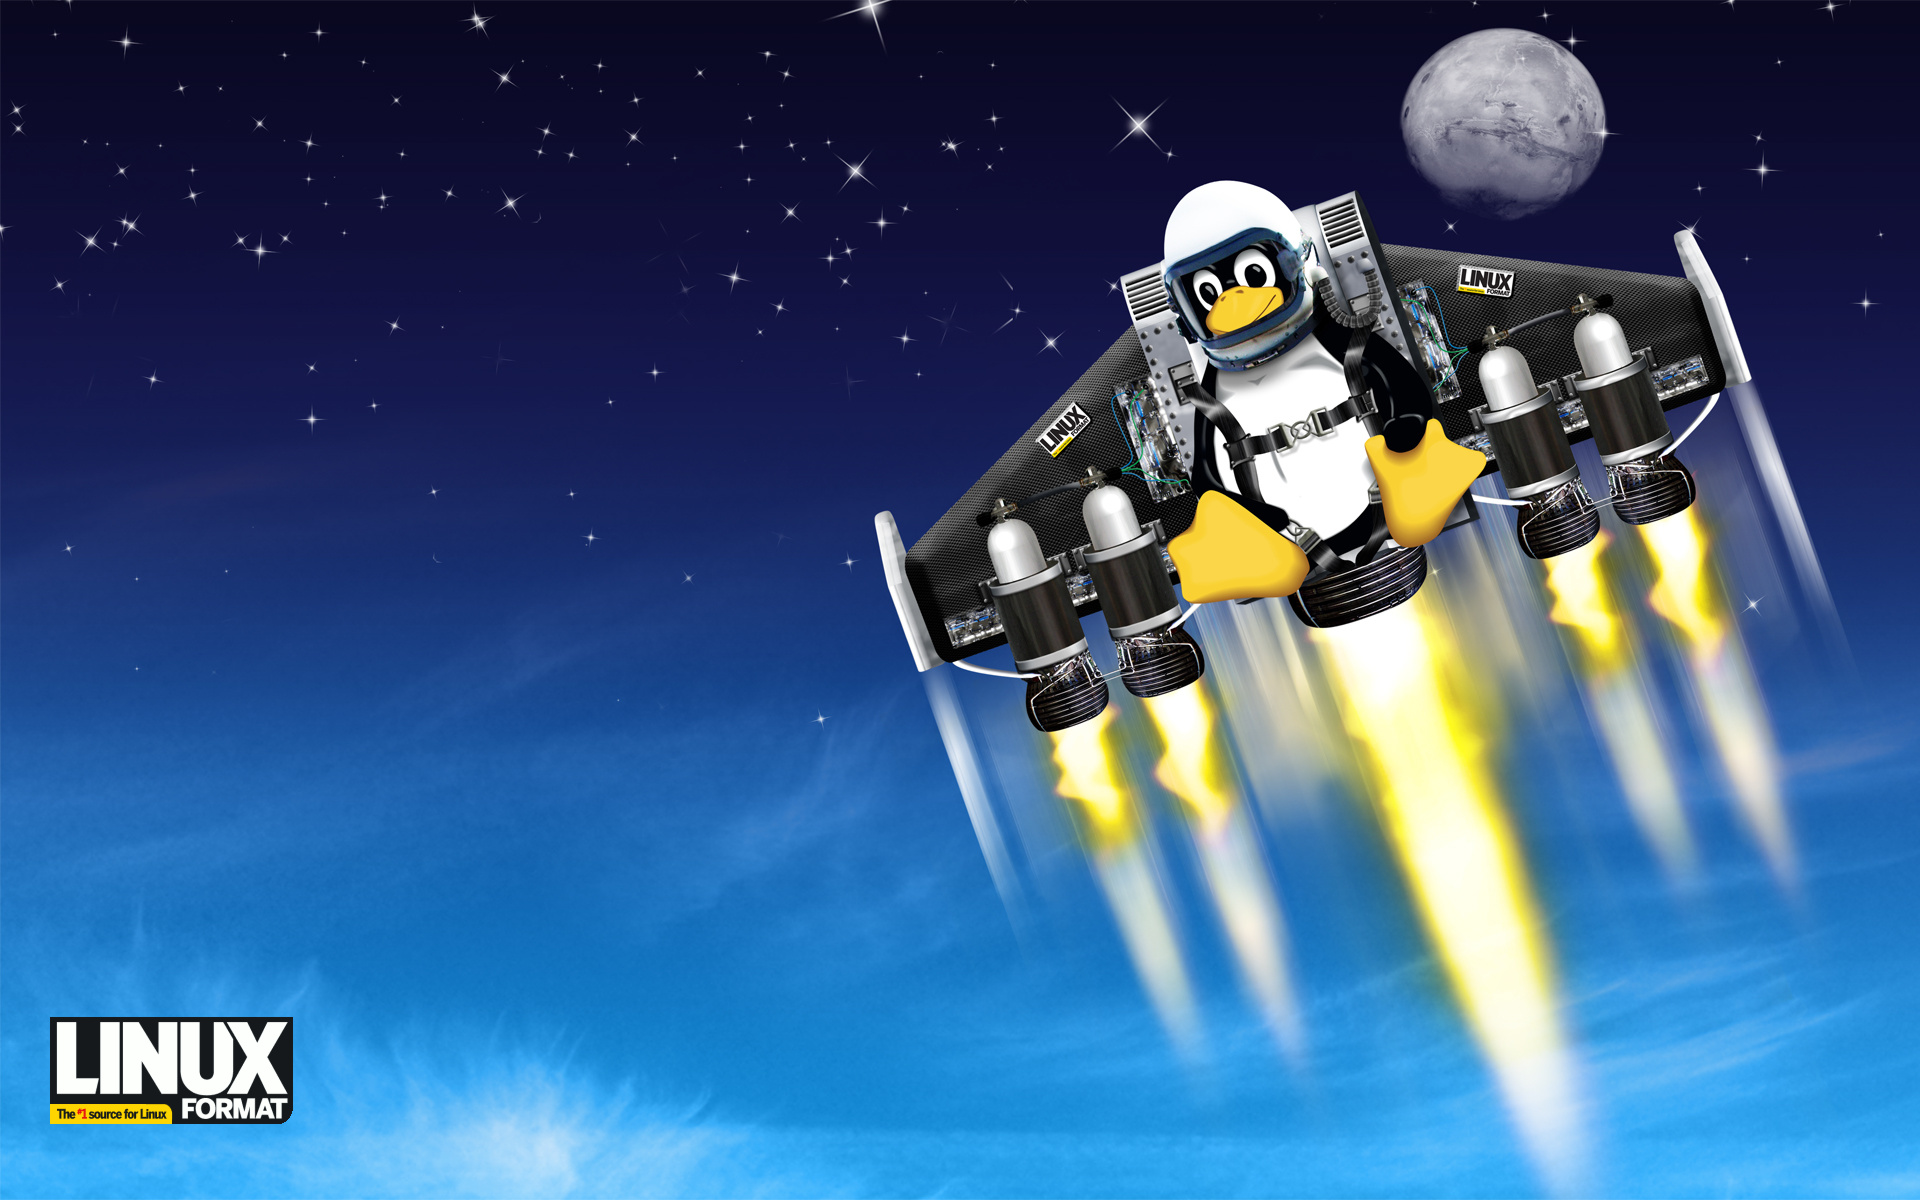 Linux Rocks Wallpaper 1920x1200 Linux Rocks Tux 1920x1200